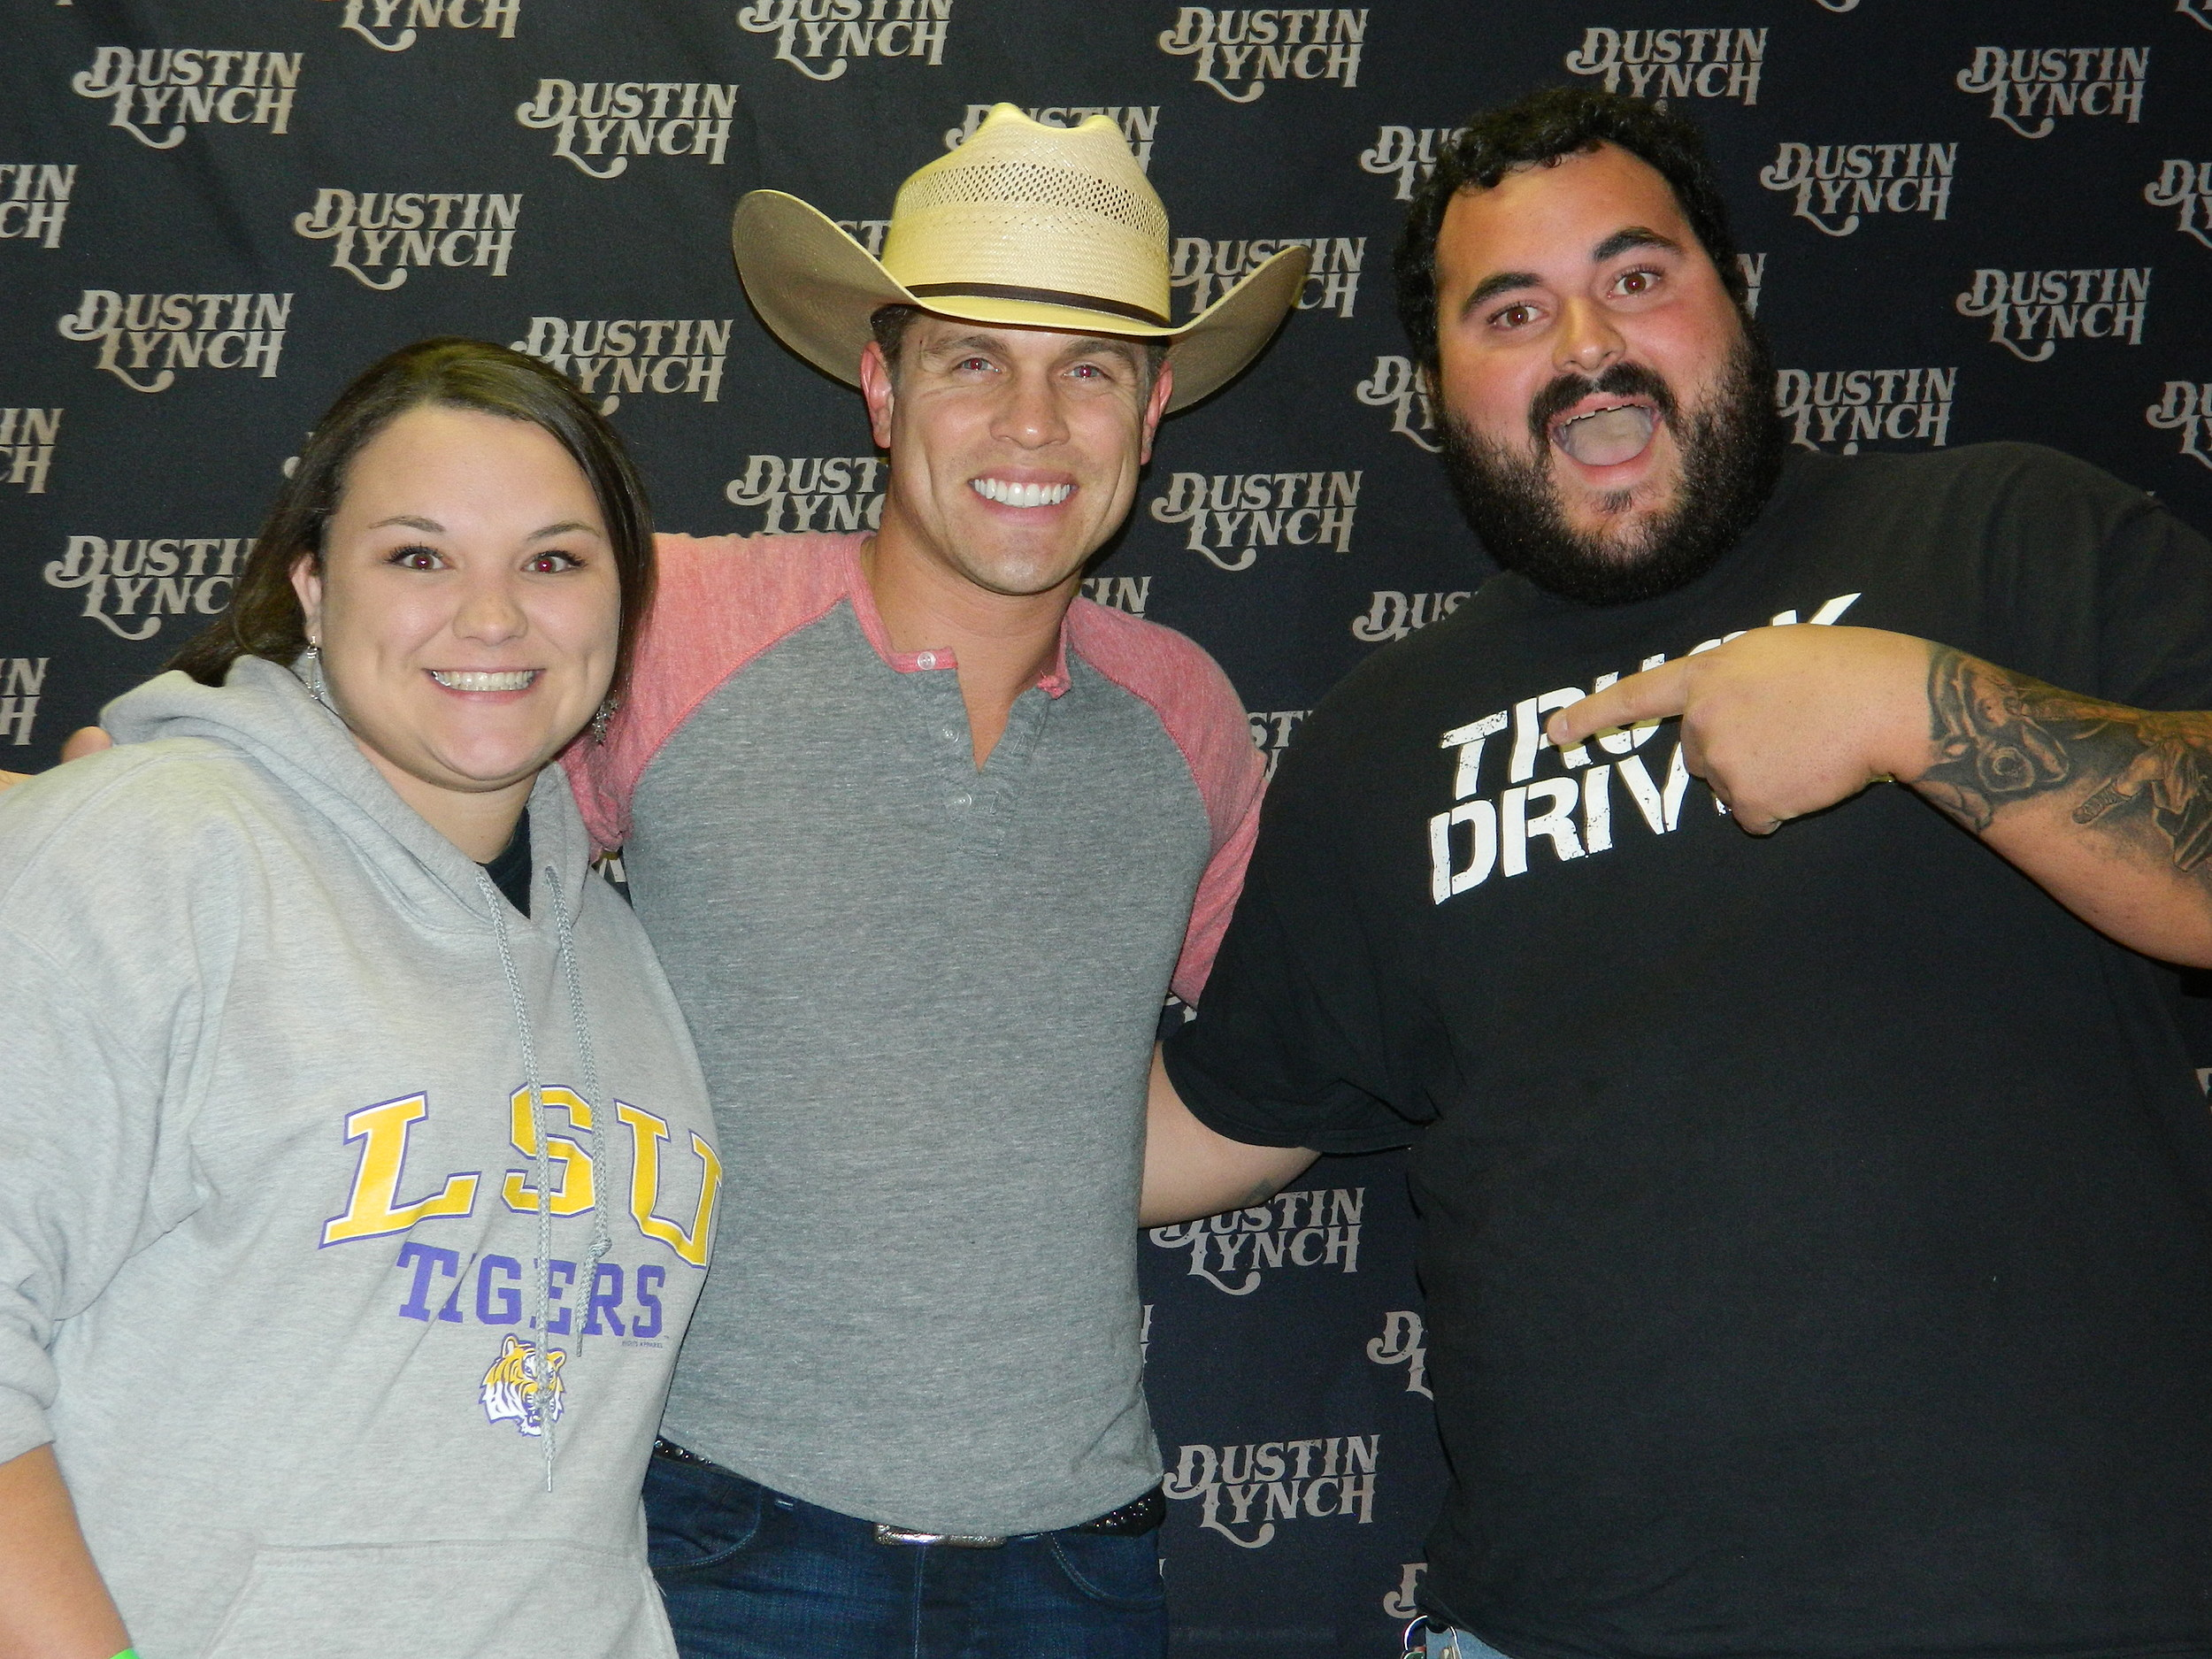 Heres The Dustin Lynch Meet And Greet Pics Photos